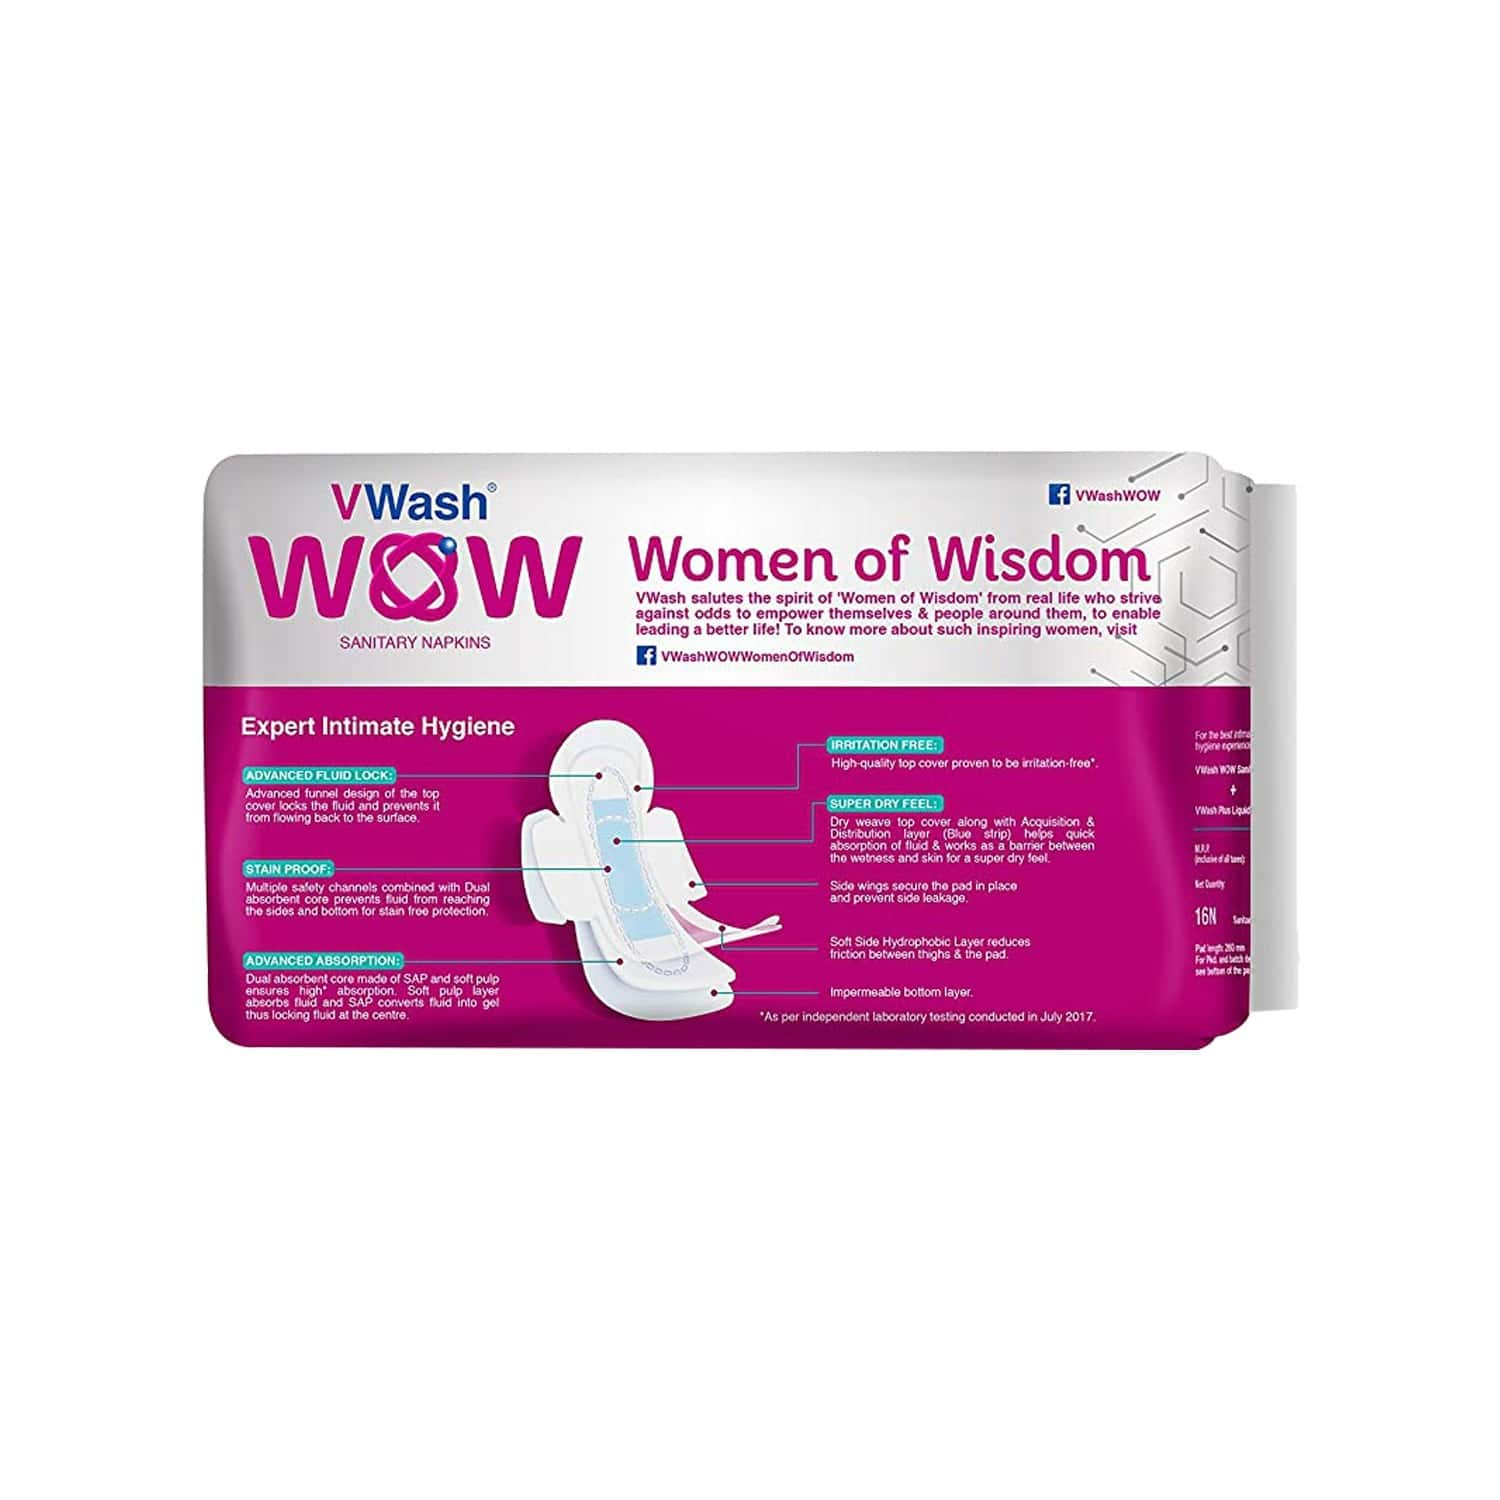 Vwash Wow Maxi Size L Sanitary Pads Pack Of 48 (packs Of 3x16)